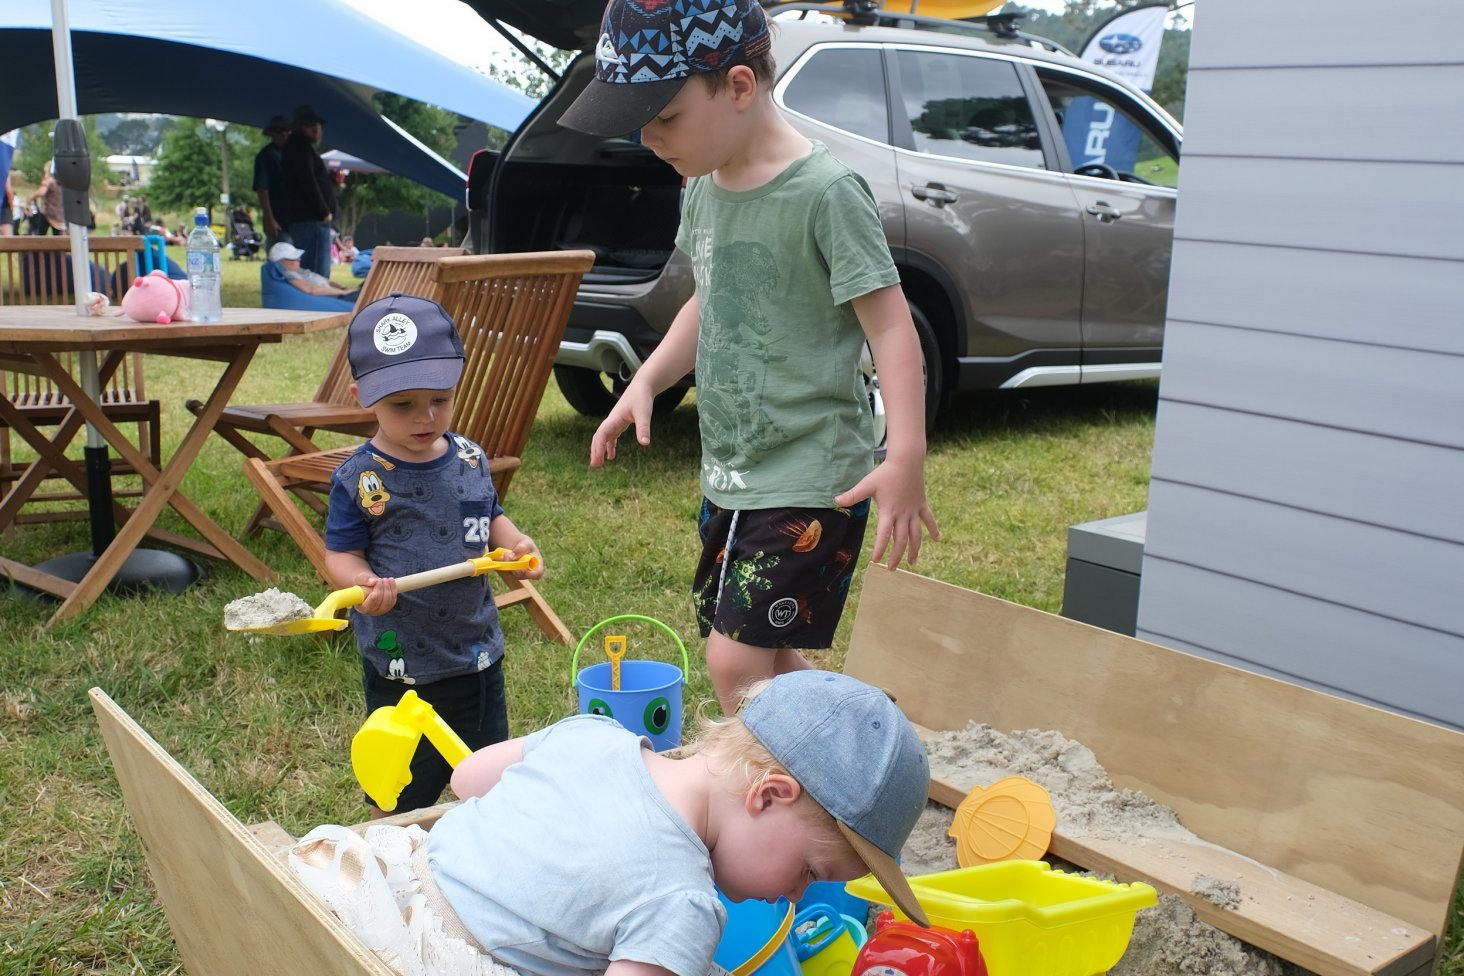 The new Subaru stand is child-friendly.